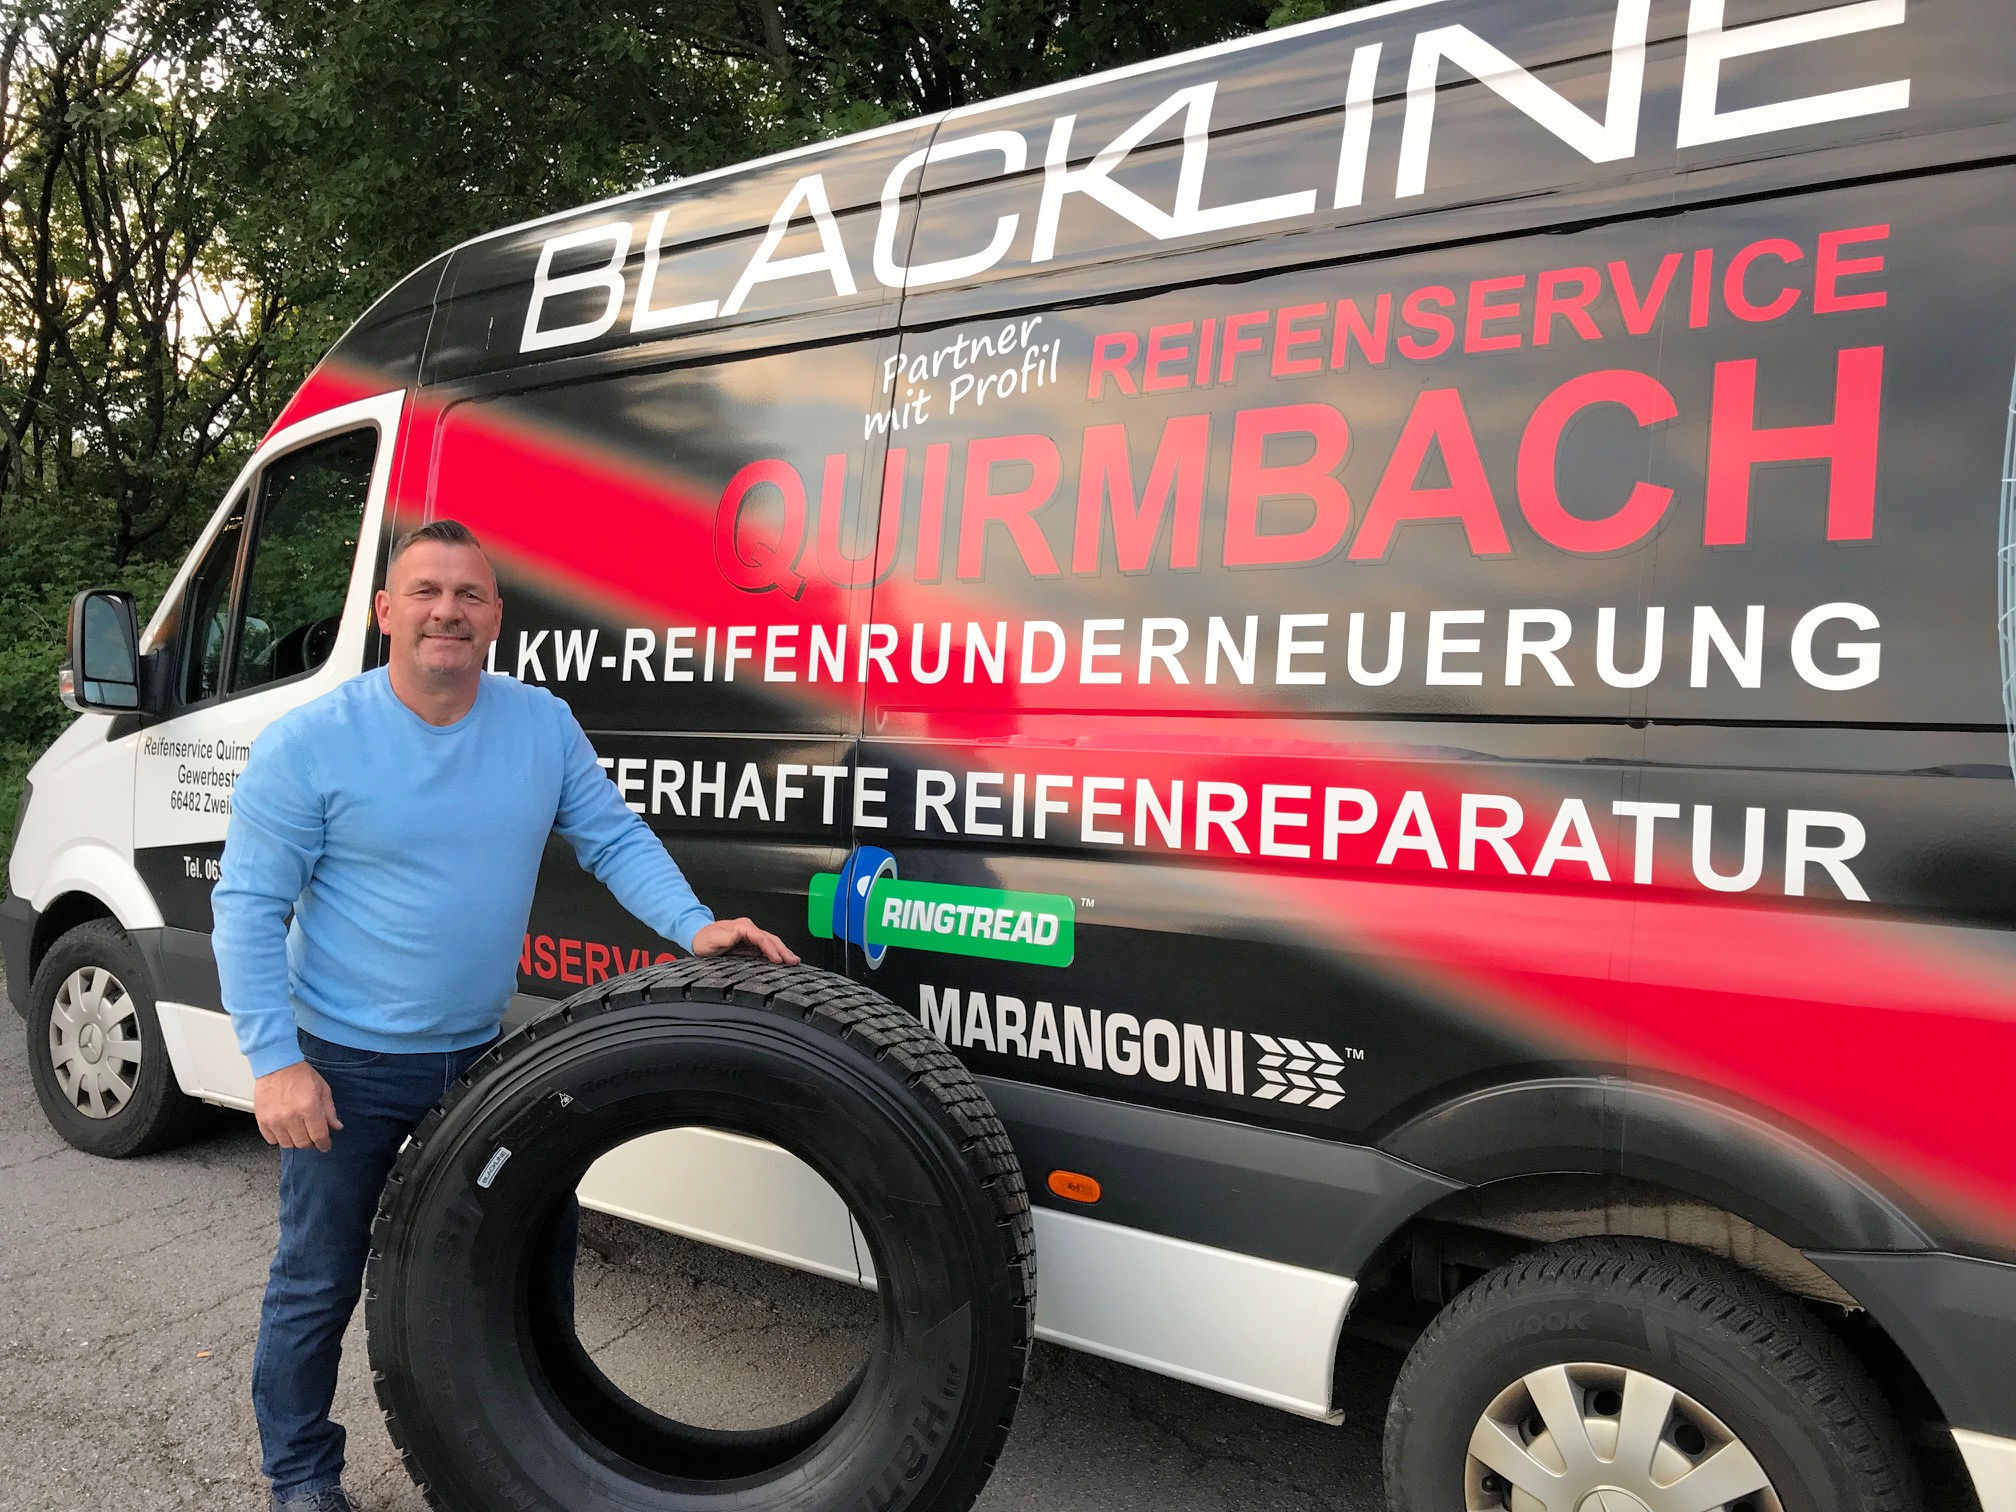 Europe's newest retreader invests in a 'particular service'